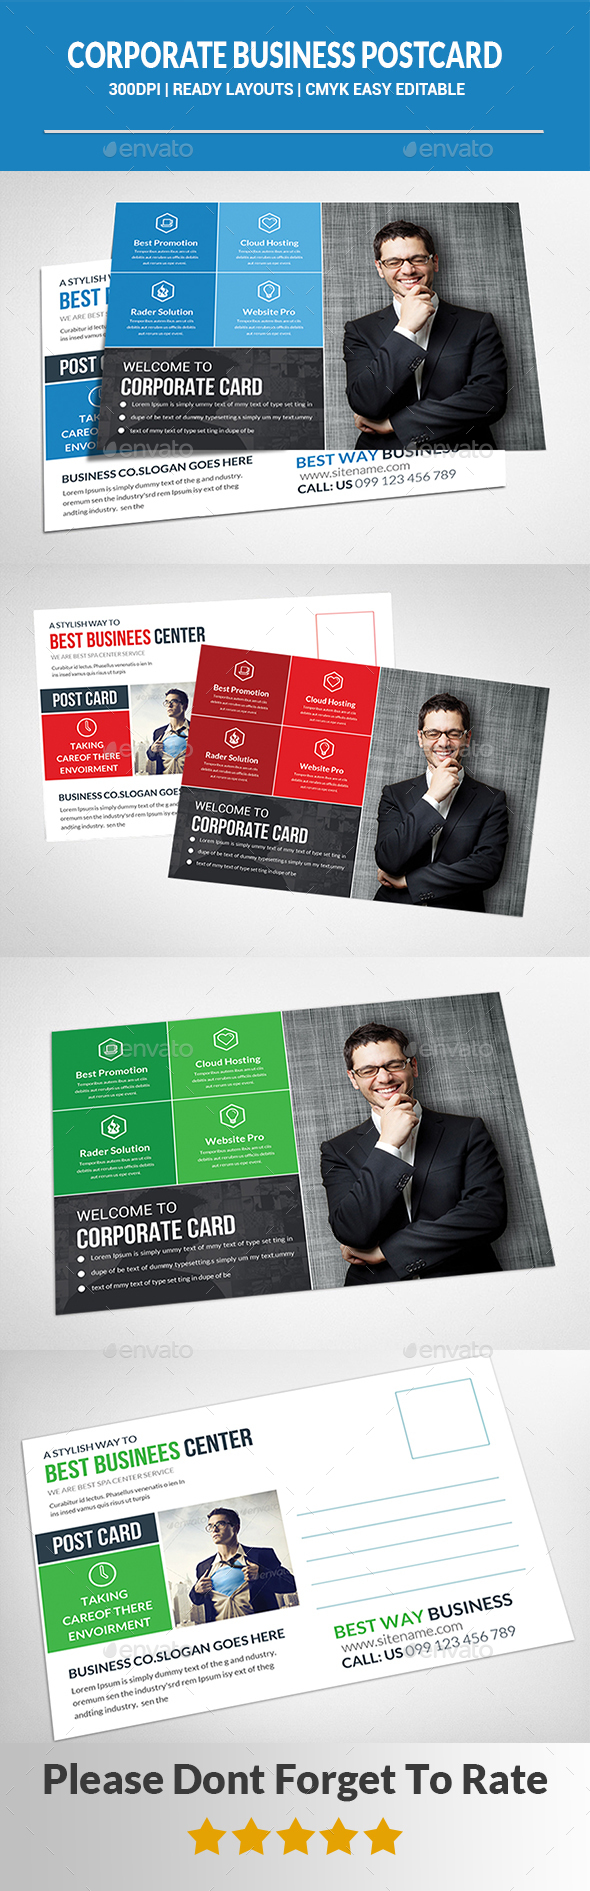 Corporate business postcard template by afjamaal graphicriver corporate business postcard template cards invites print templates wajeb Gallery